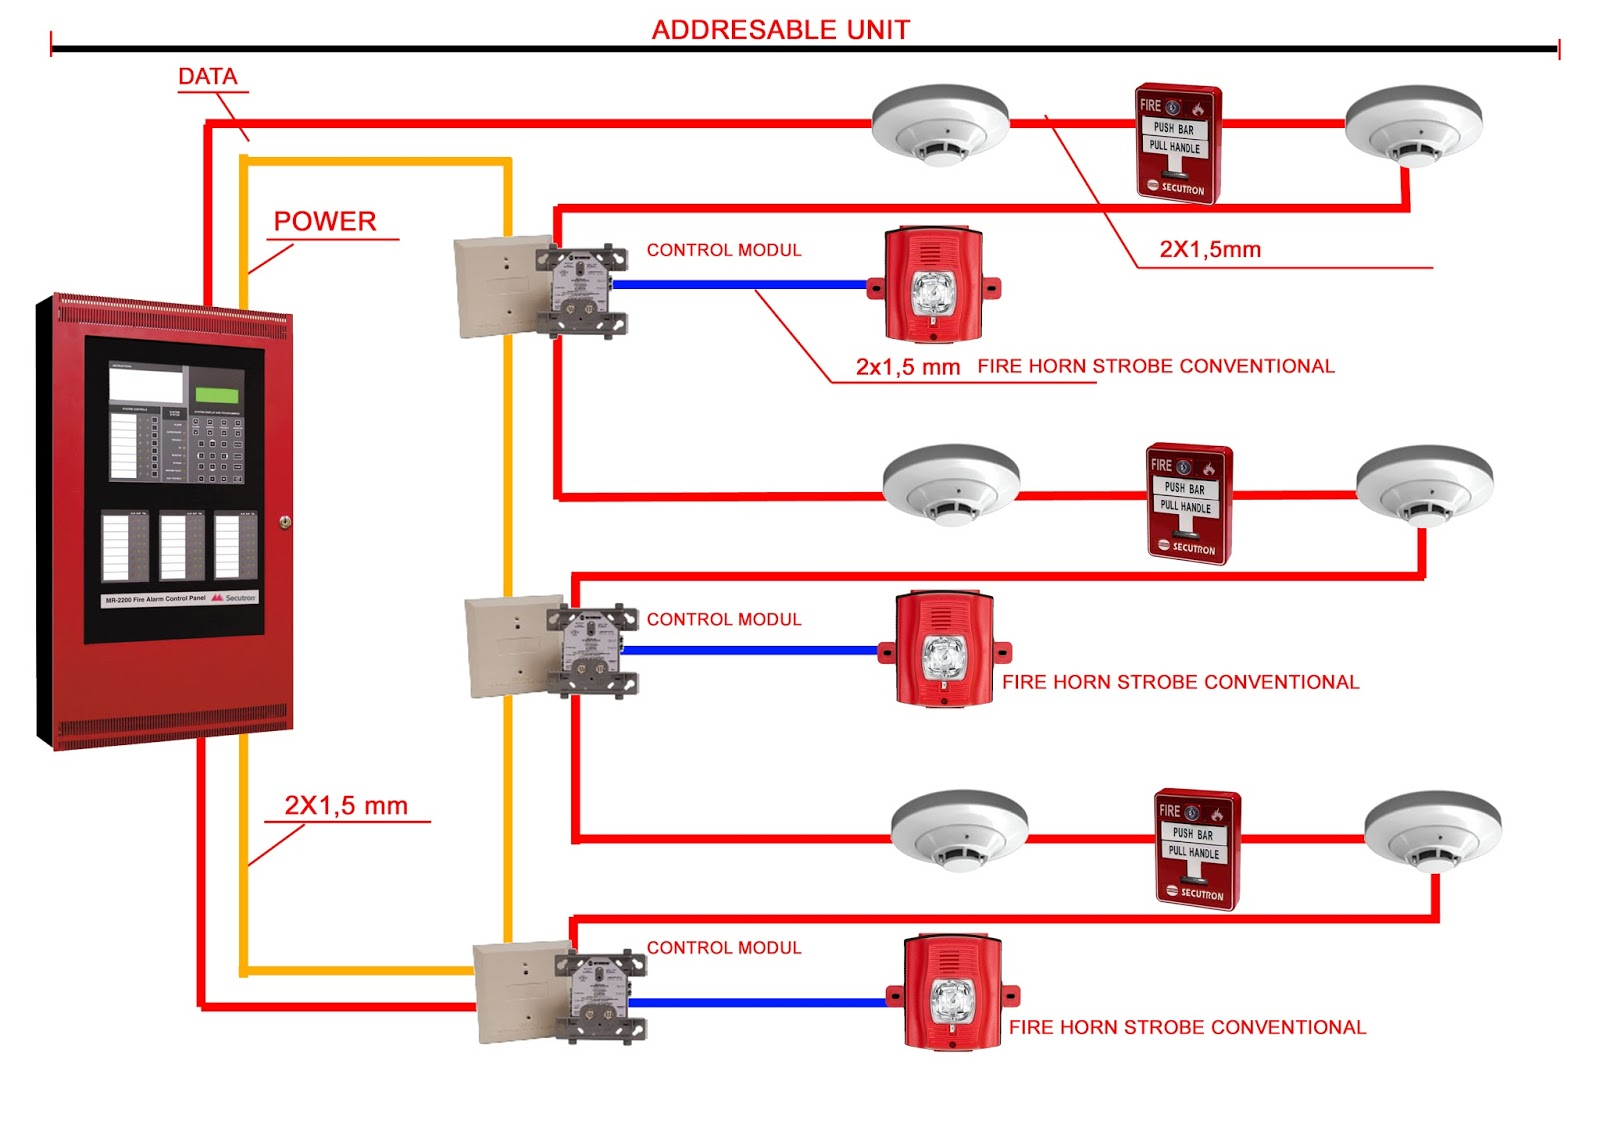 Addressable Fire Alarm Wiring Diagram from 3.bp.blogspot.com